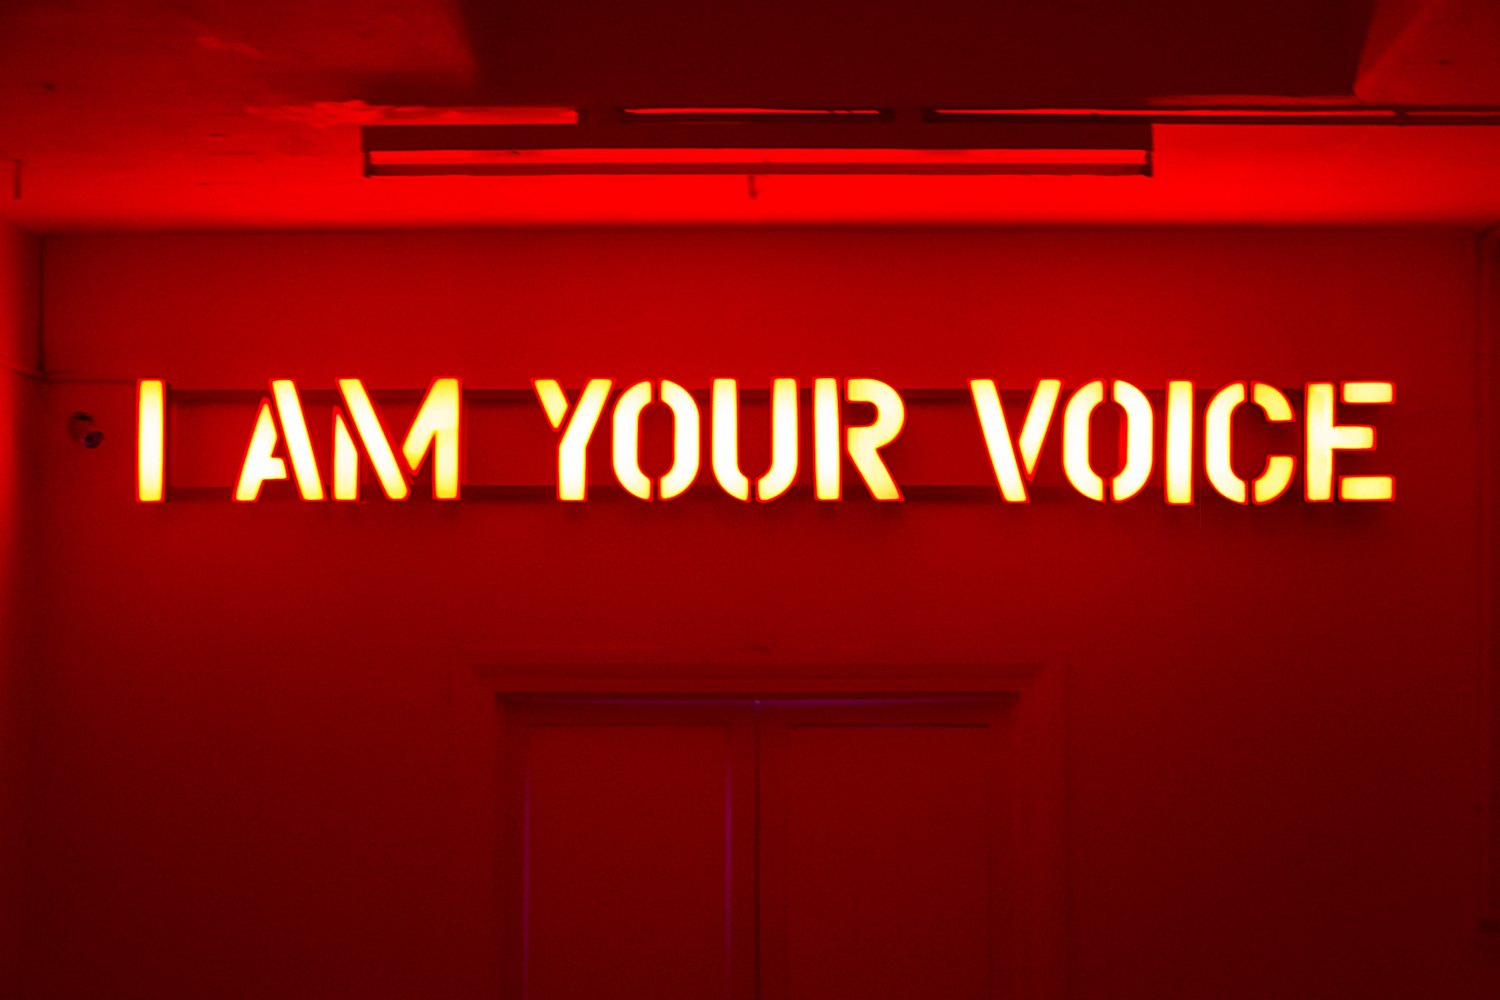 Claire Fontaine  Untitled (I am your voice), 2016 Wall mounted LED constructed letters, 31 x 0.31 x 6 cm